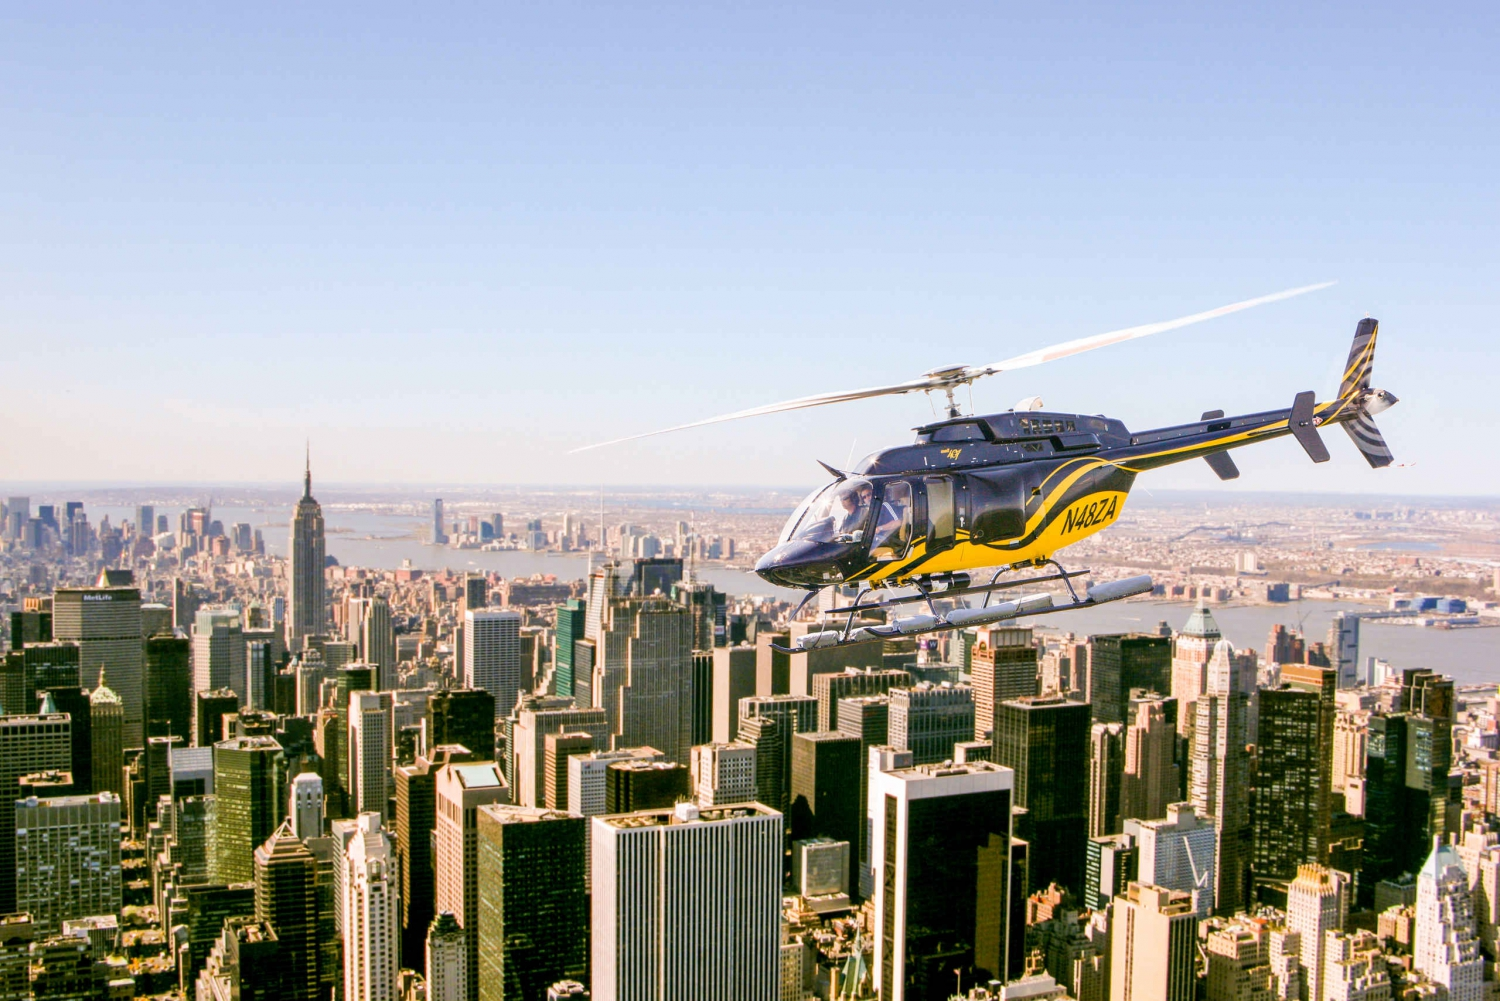 Grand Island Luxury Helicopter Tour